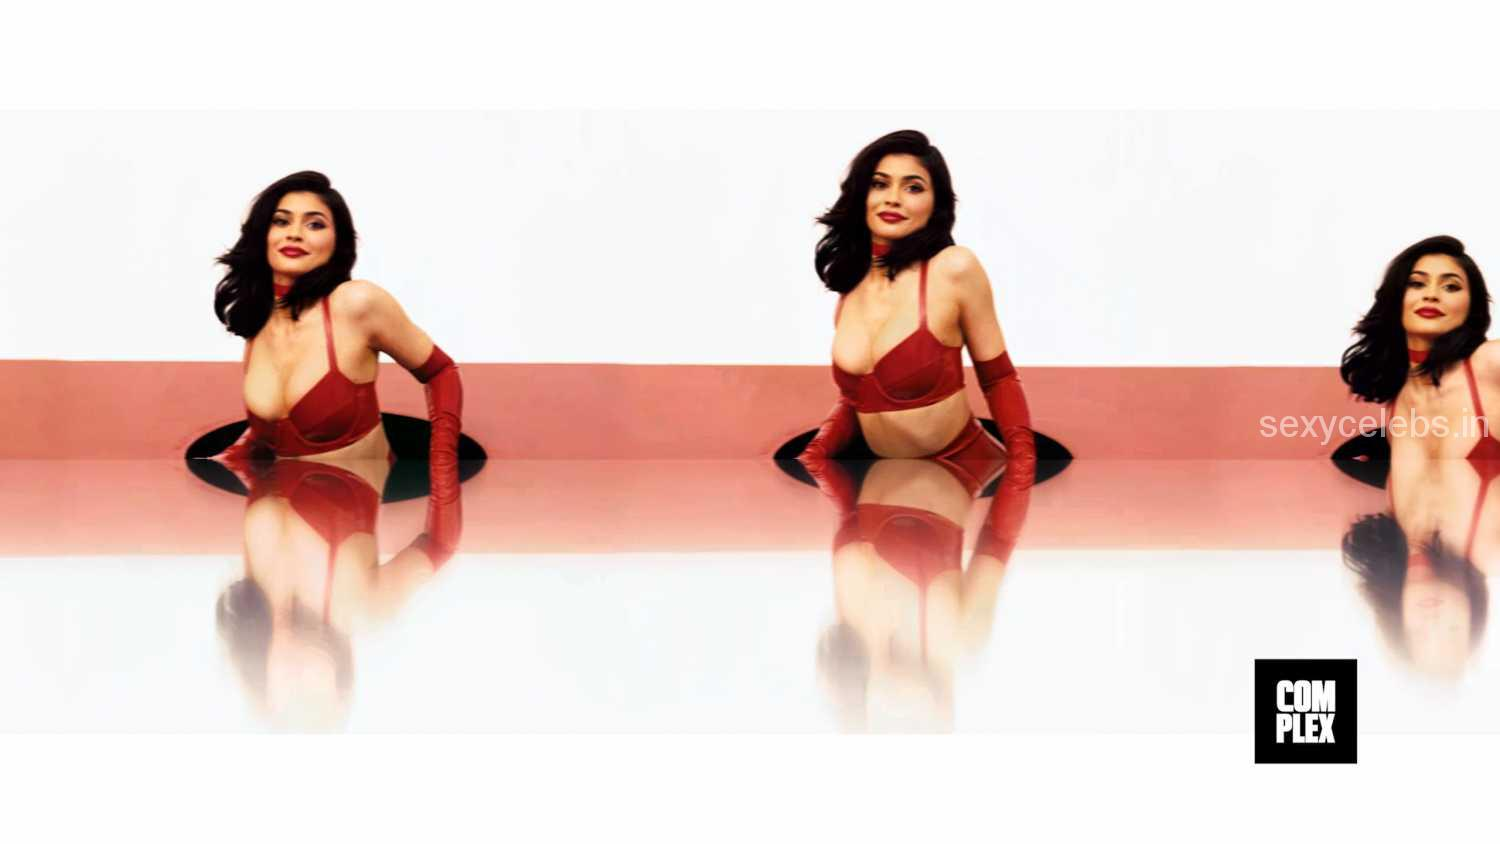 Sexy Kylie Jenner Beautiful Slutty Huge ass and Topless Kylie Jenner Naughty Pics from Complex Magazine Octo 2016